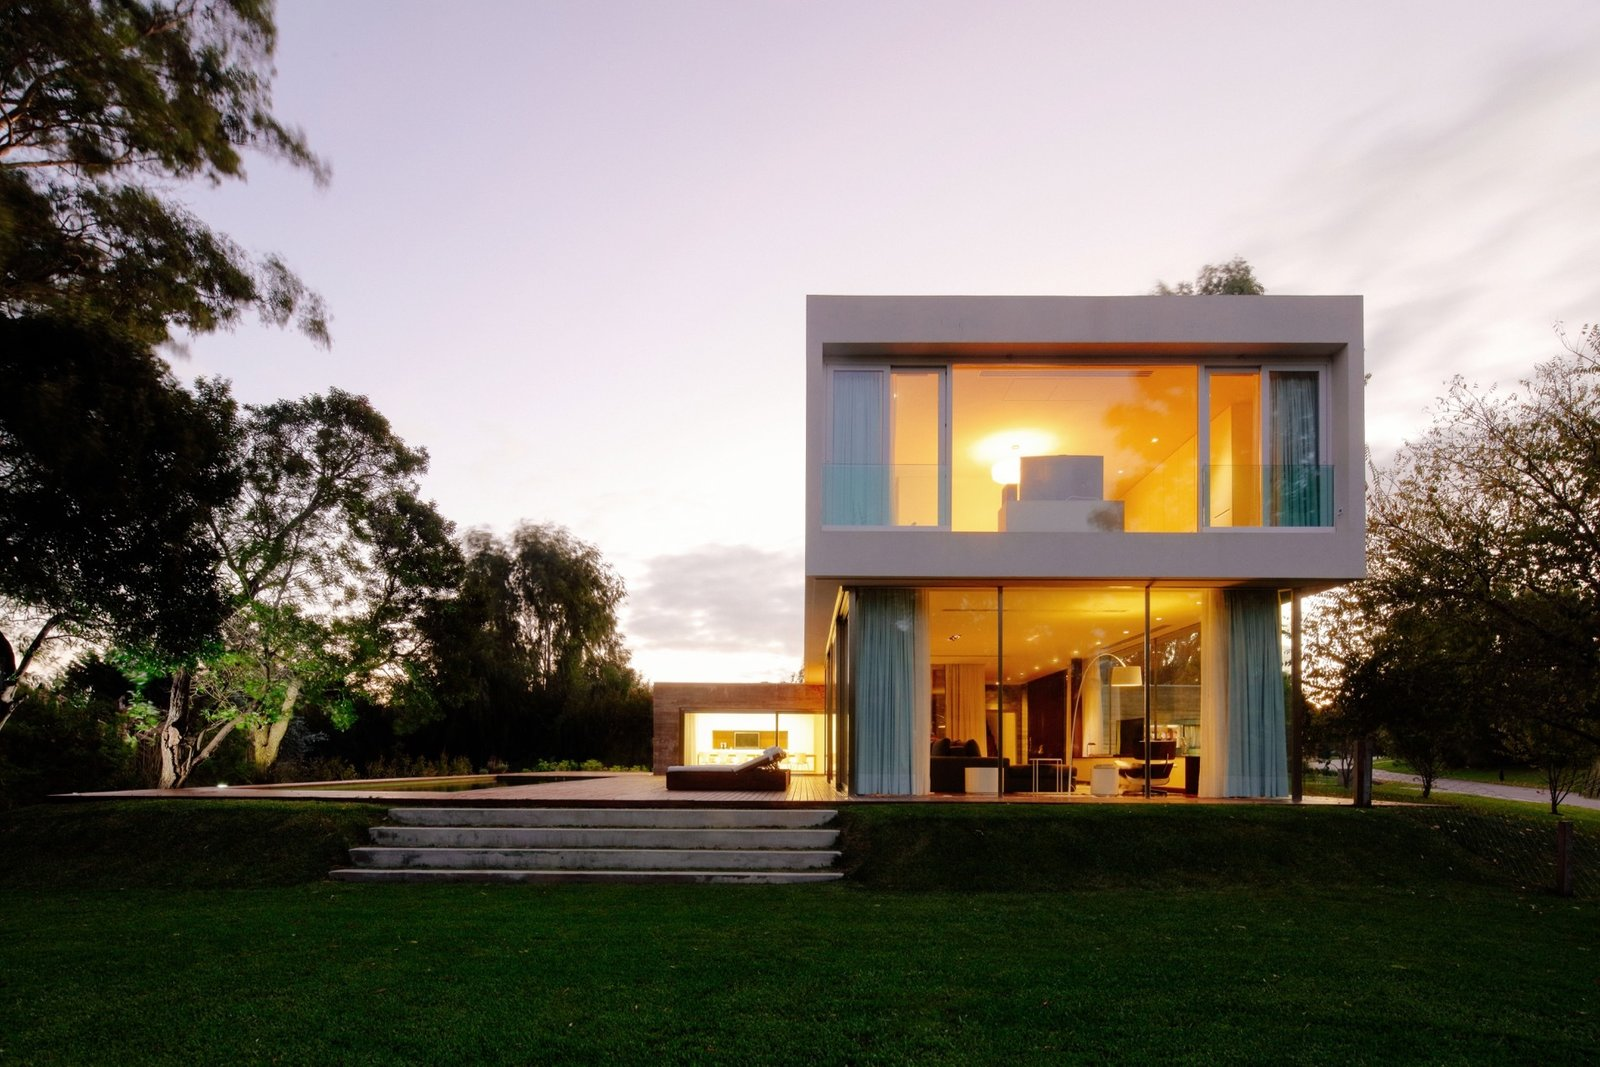 Outdoor, Large Patio, Porch, Deck, Grass, Back Yard, Trees, and Wood Patio, Porch, Deck Side view of the House at Los Cisnes at dawn. Concrete, Glass, Wood.  House at Los Cisnes by Esteban Fallone